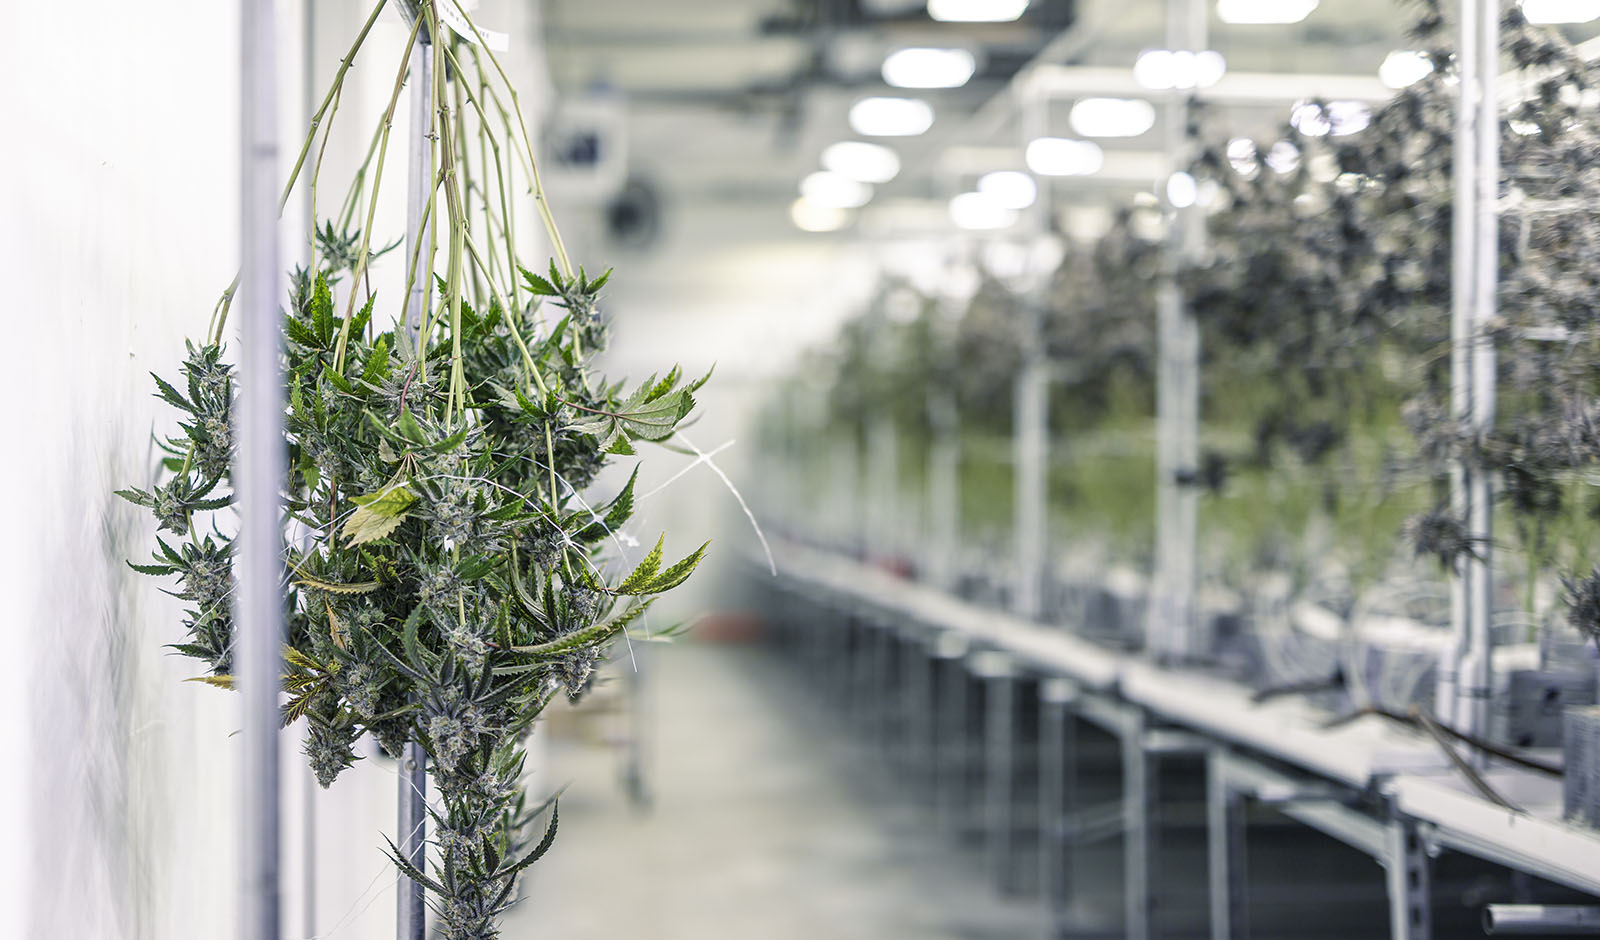 Marijuana Plant Branches with Buds Hanging for Harvest